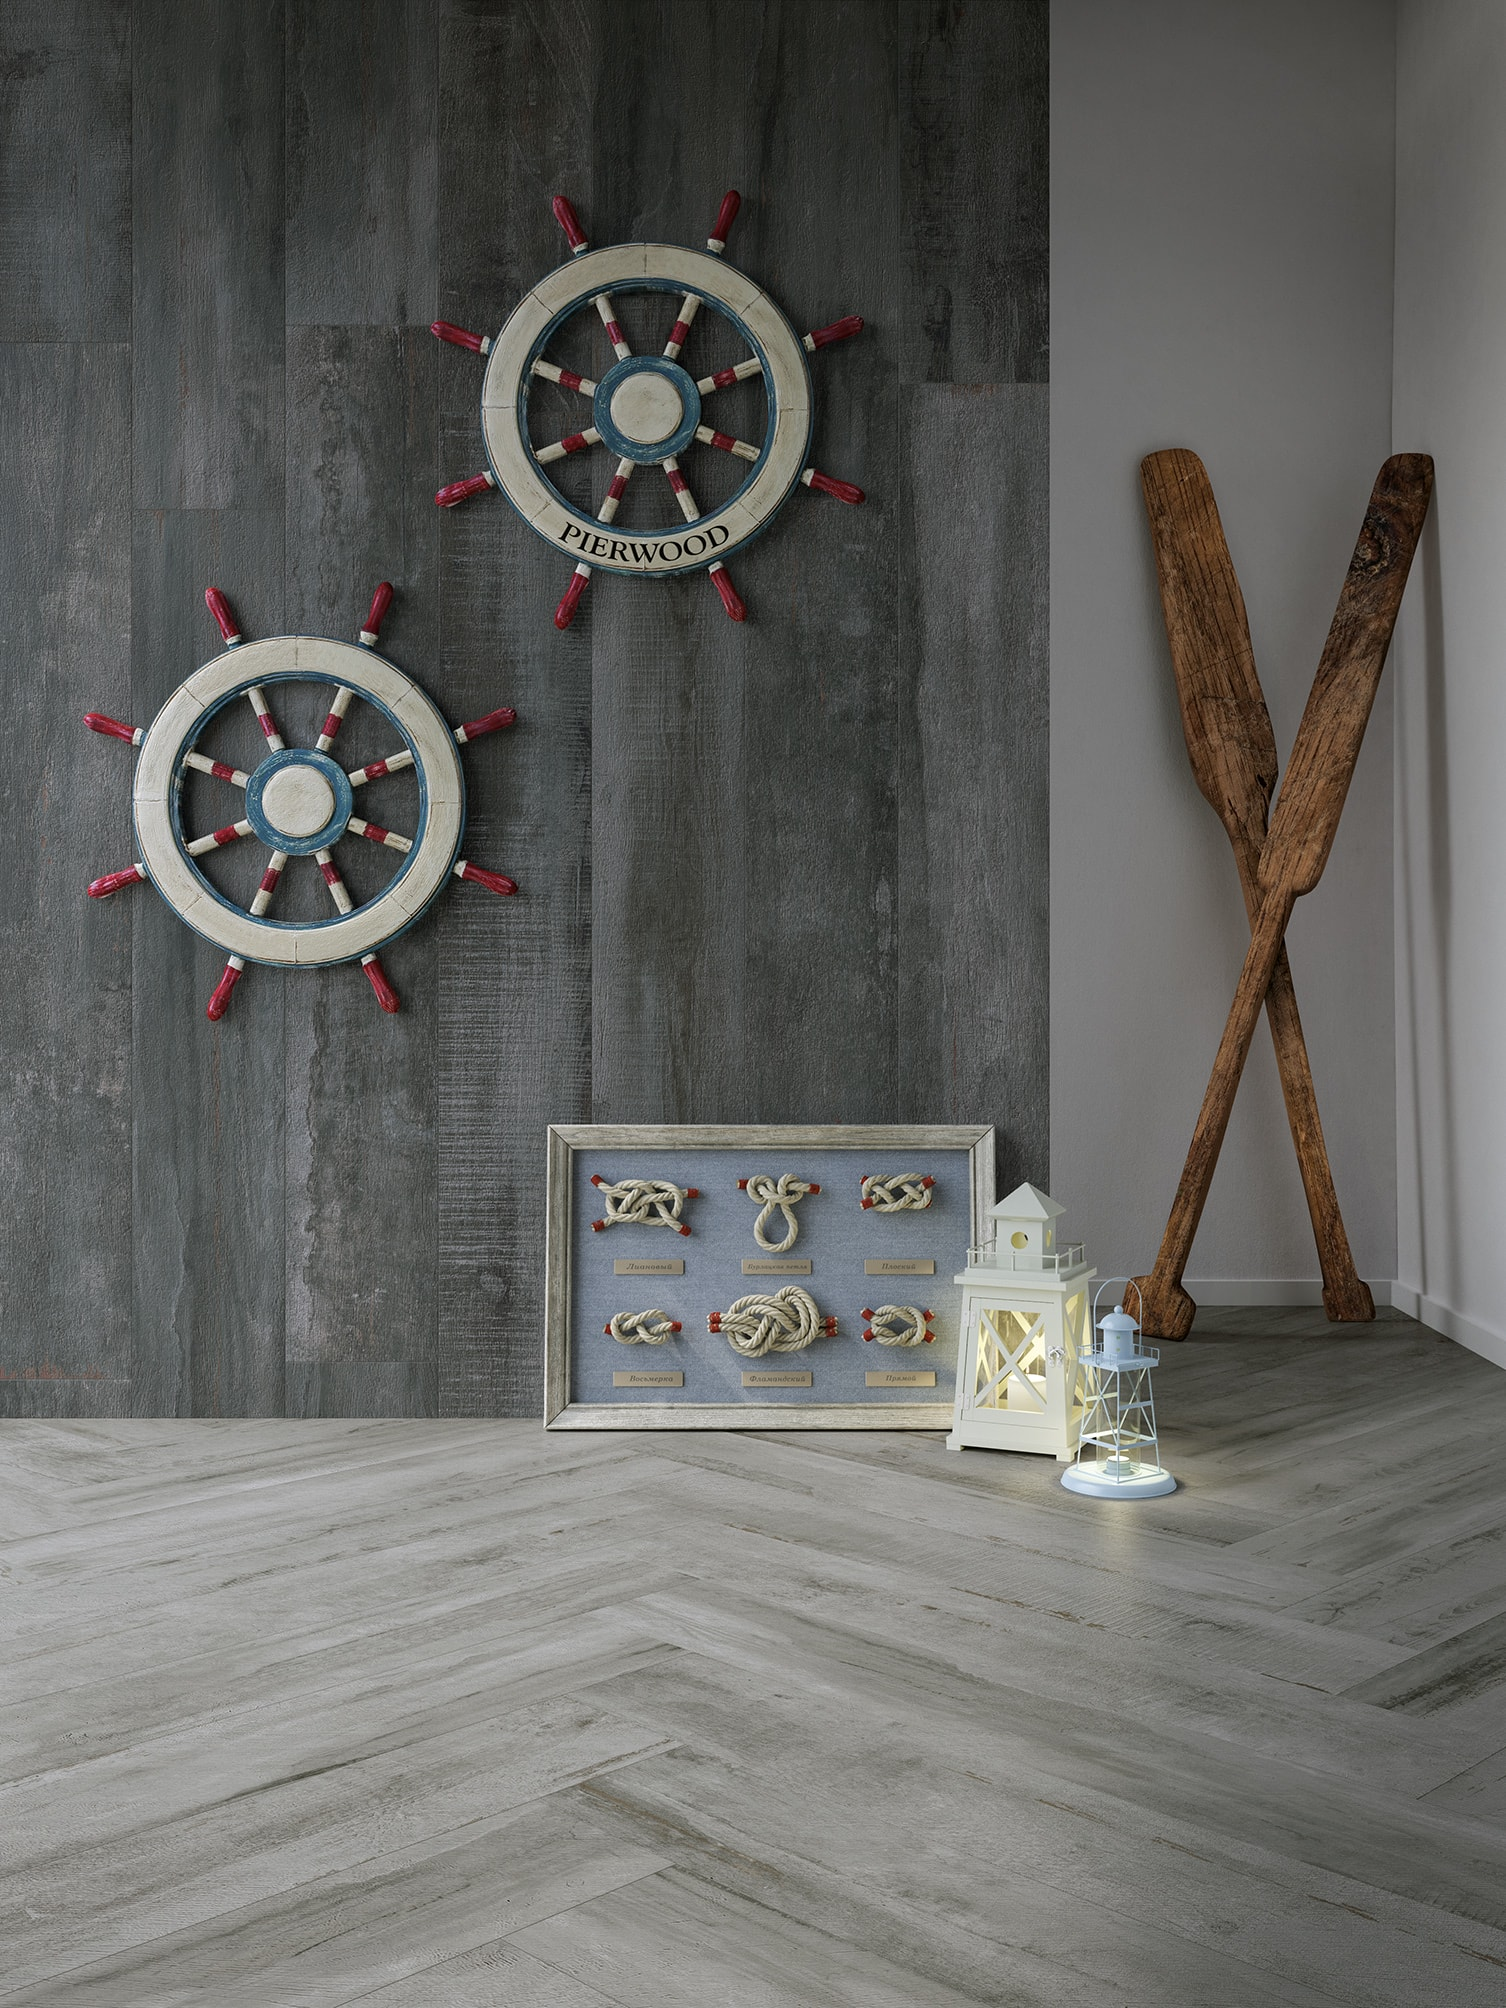 Pierwood By Cisa Ceramiche